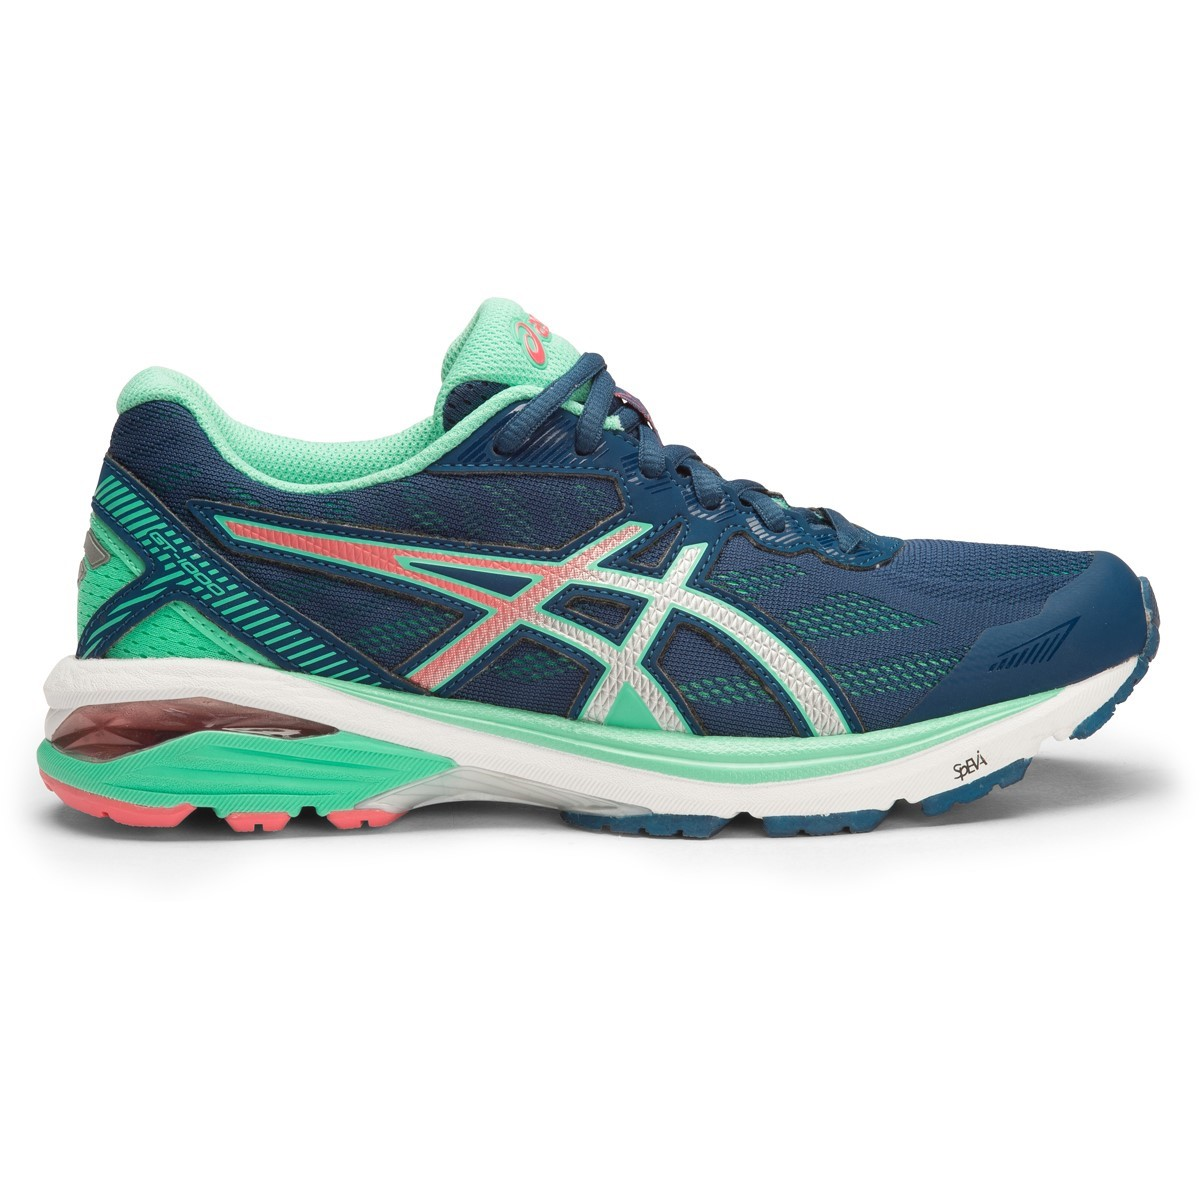 asics gt 1000 5 b womens running shoes poseidon silver cockatoo online sportitude. Black Bedroom Furniture Sets. Home Design Ideas